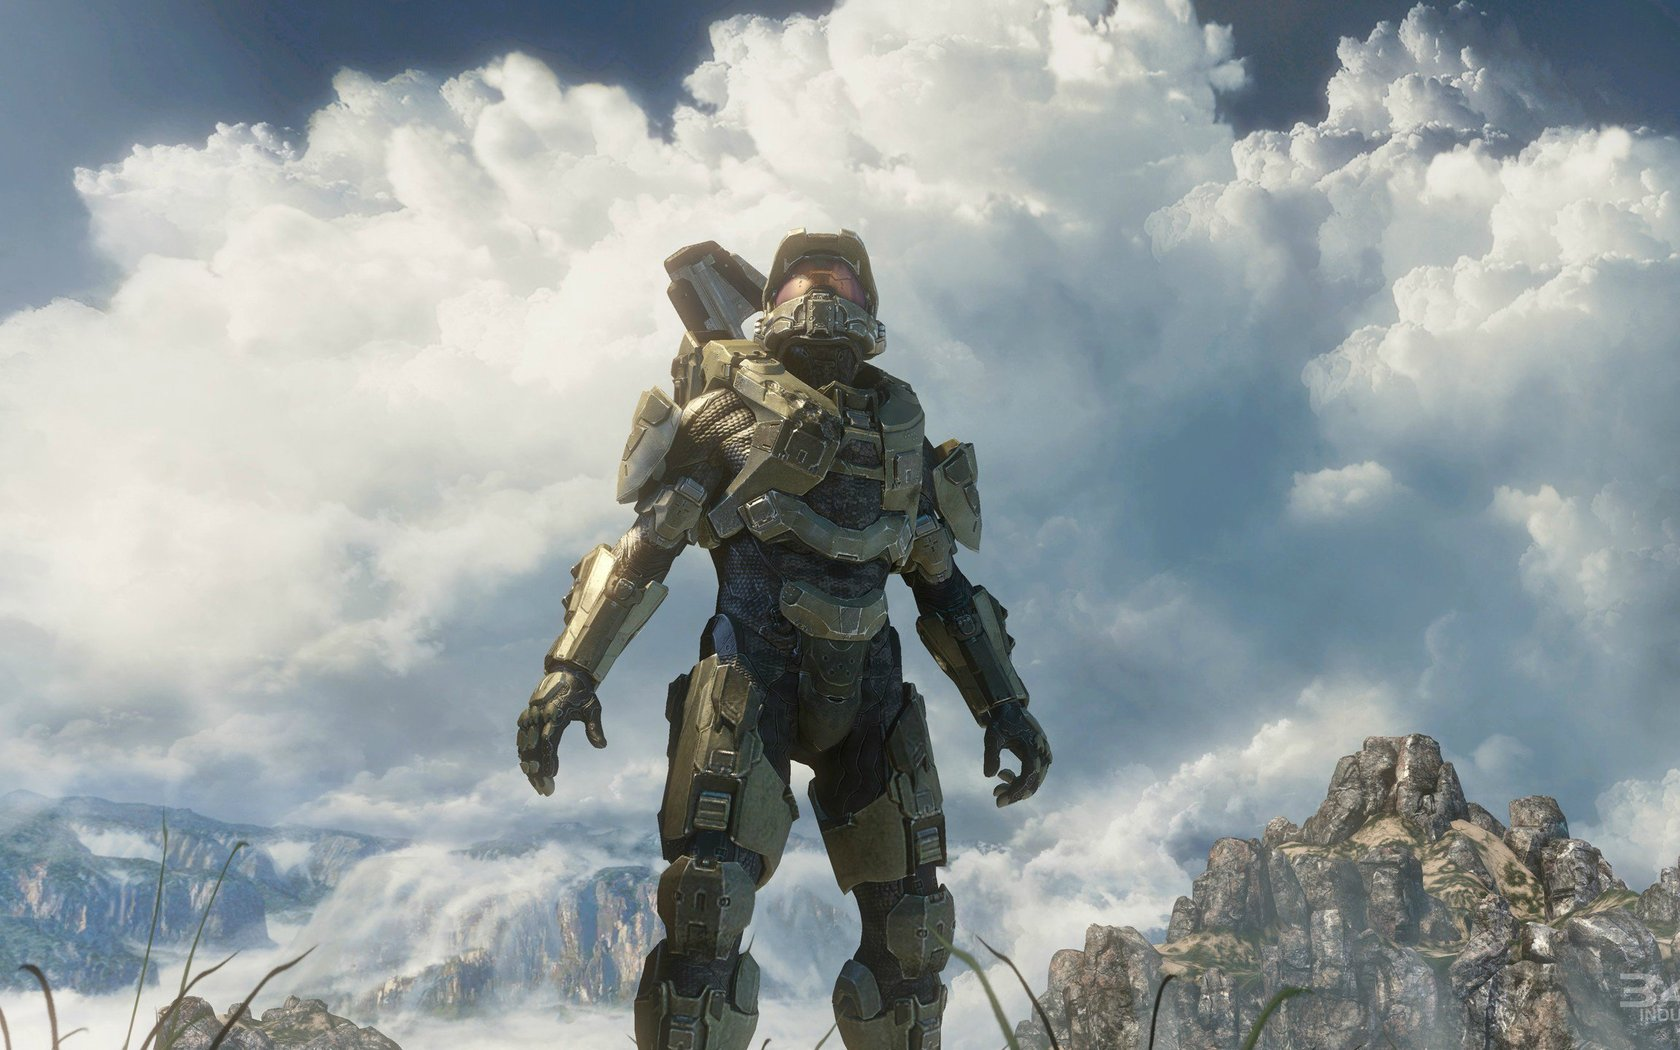 Description Halo 4 Wallpaper is a hi res Wallpaper for pc 1680x1050